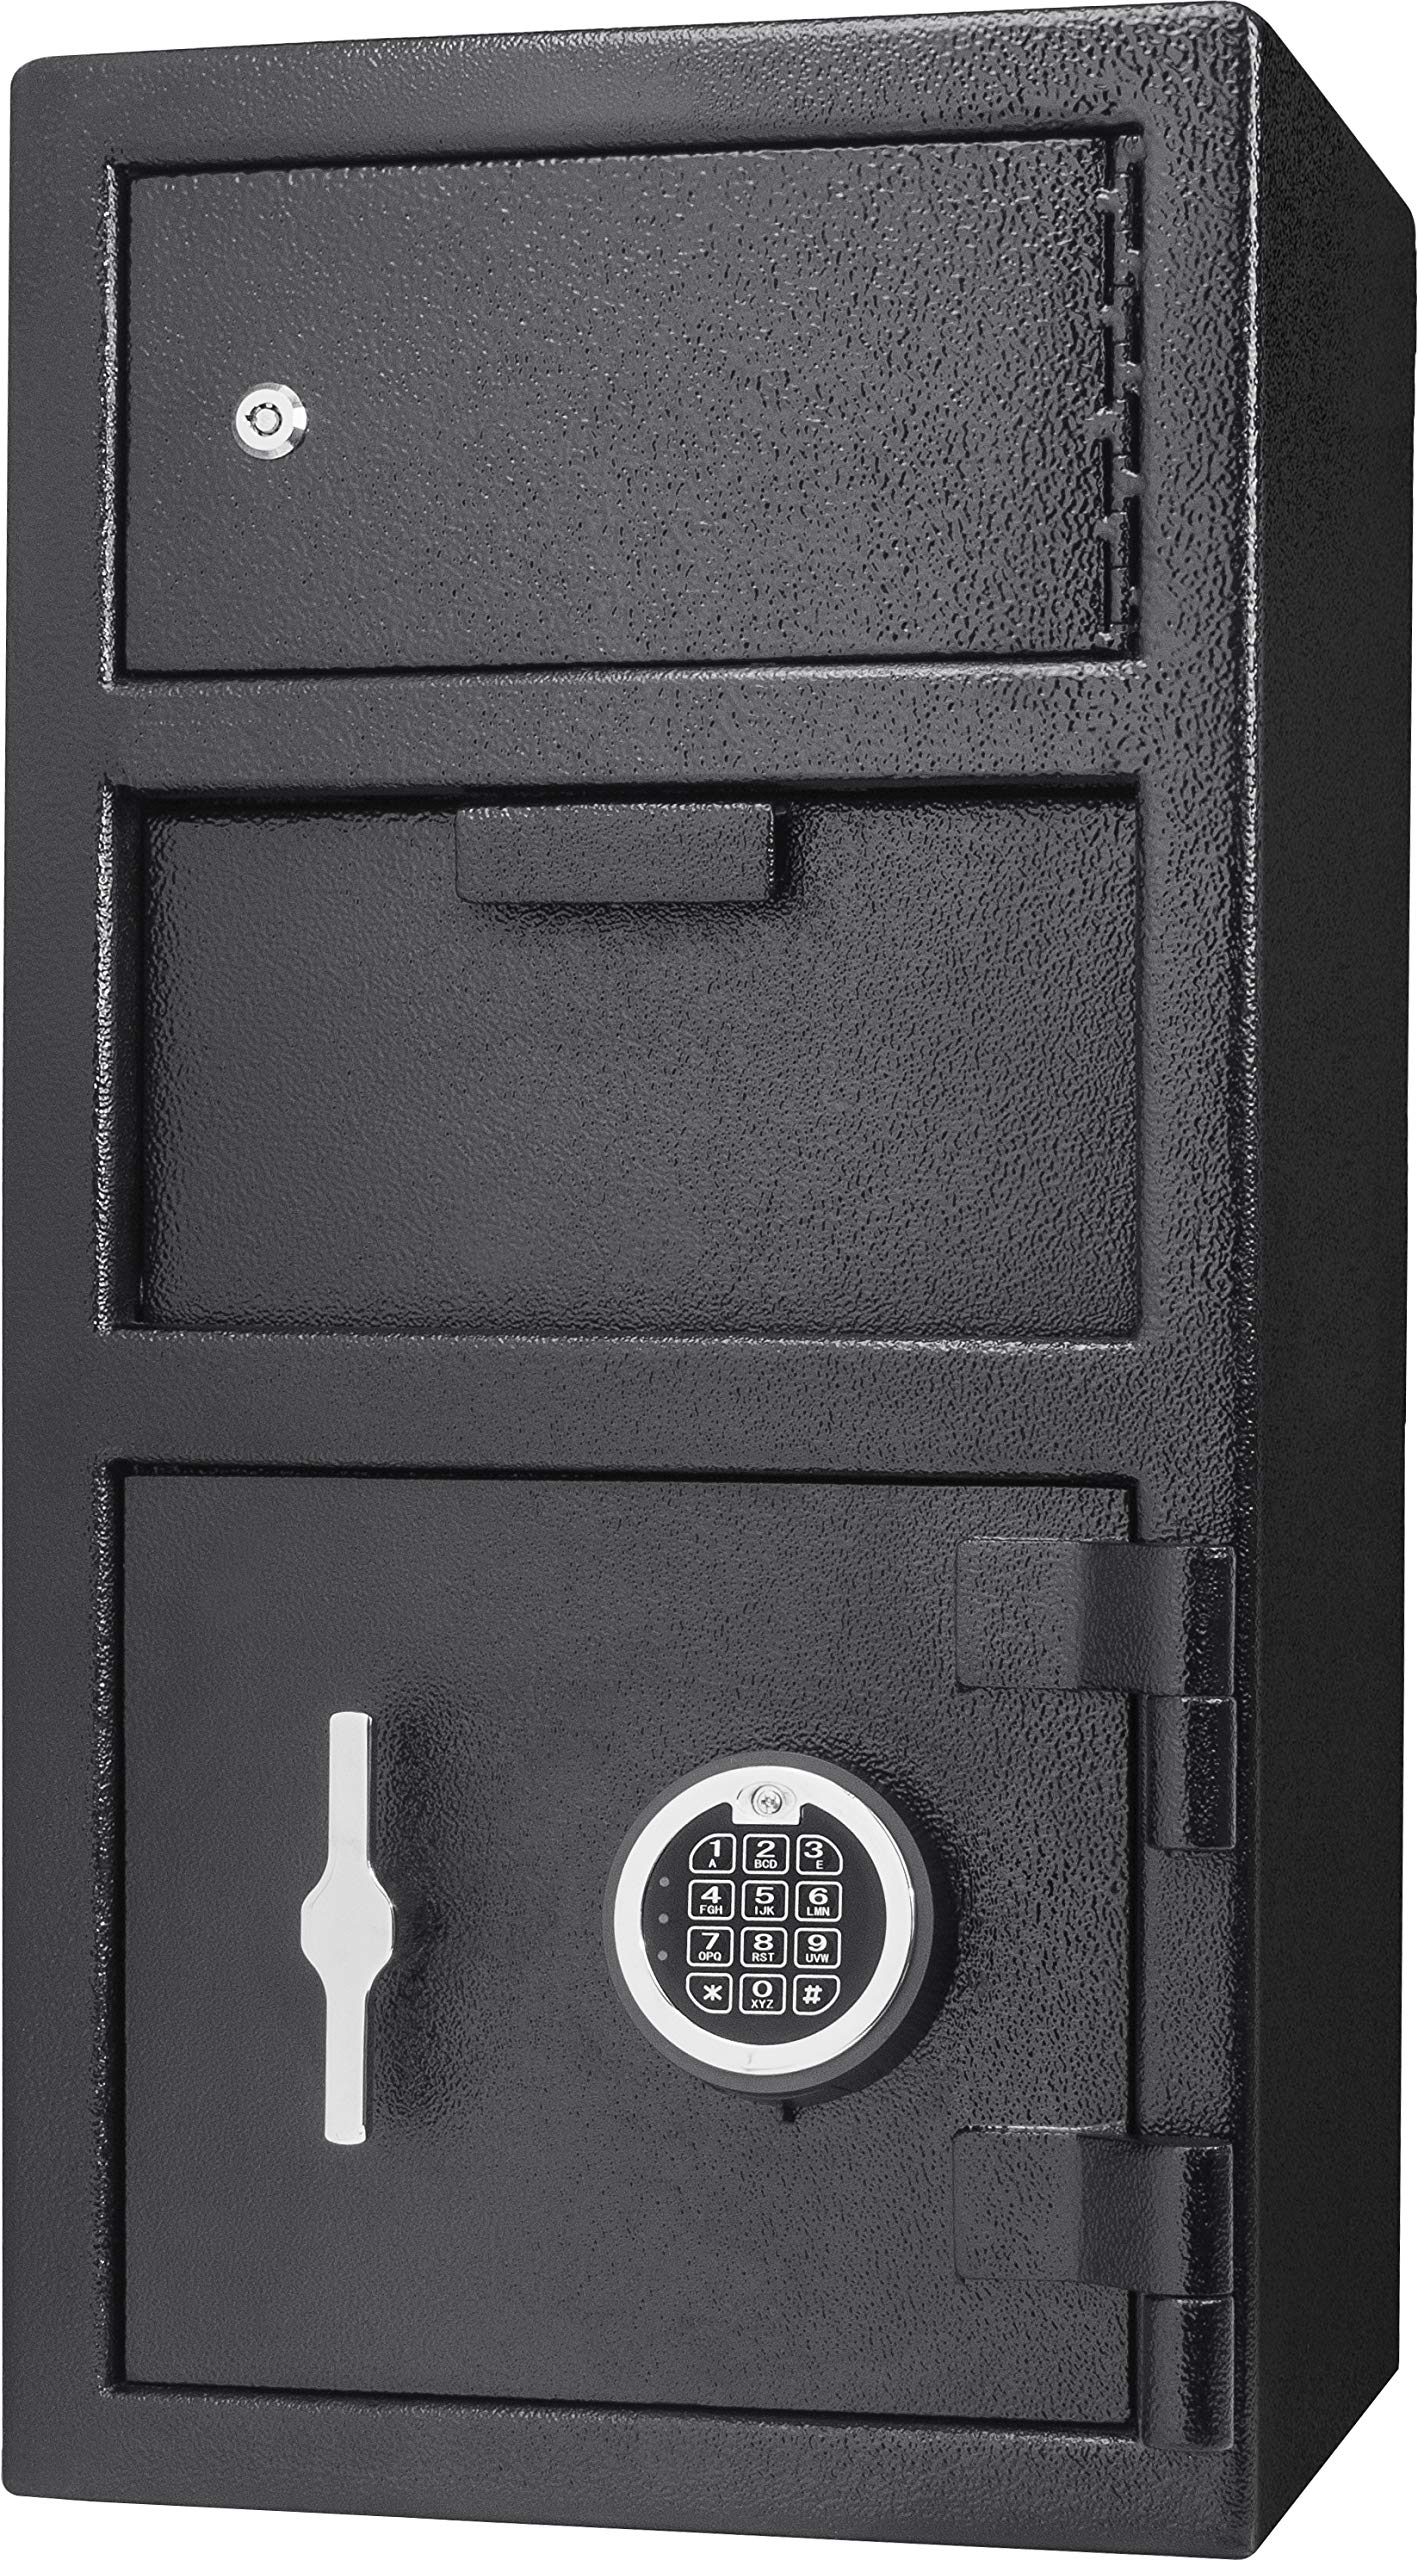 Winbest Steel Digital Keypad Security Lock Depository Drop Slot Parcel Mail Safe with Locker by winbest